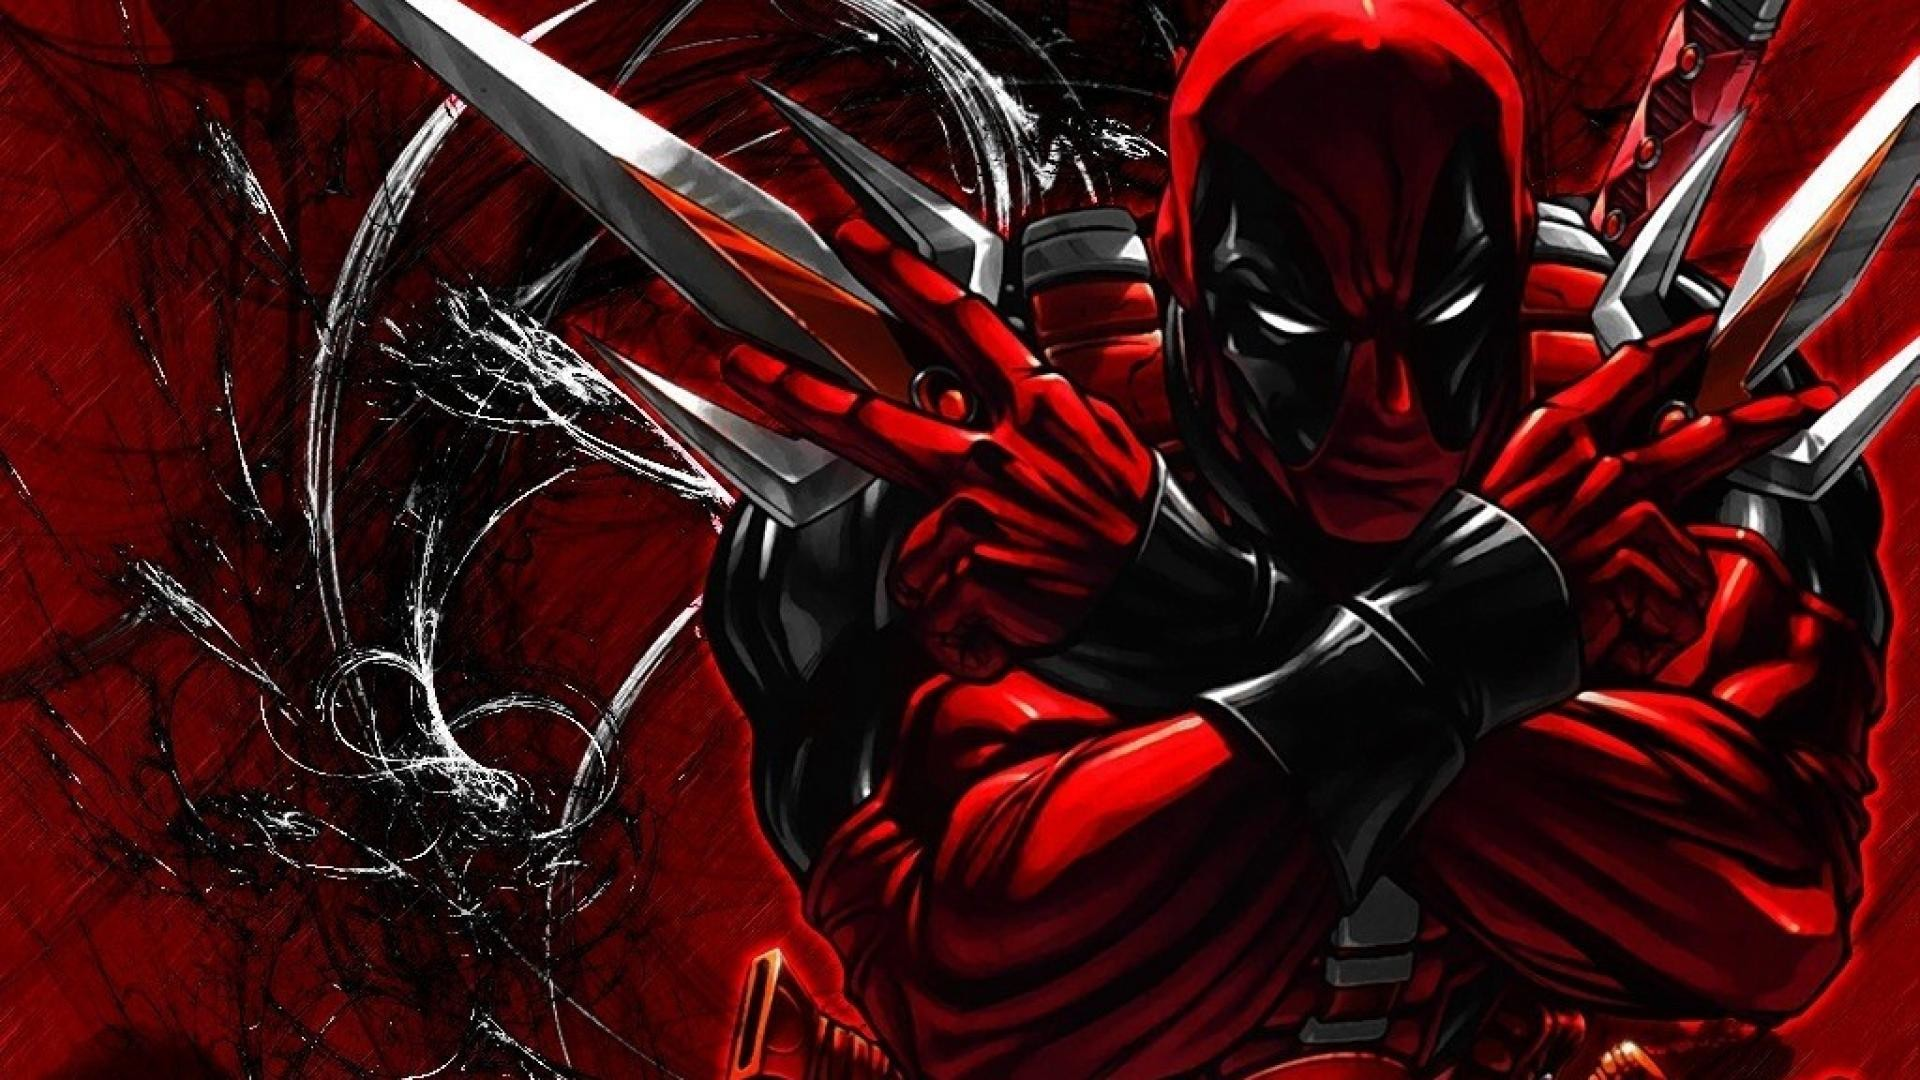 Anime Wallpapers For Pc Group - Marvels Wallpaper For Pc - HD Wallpaper